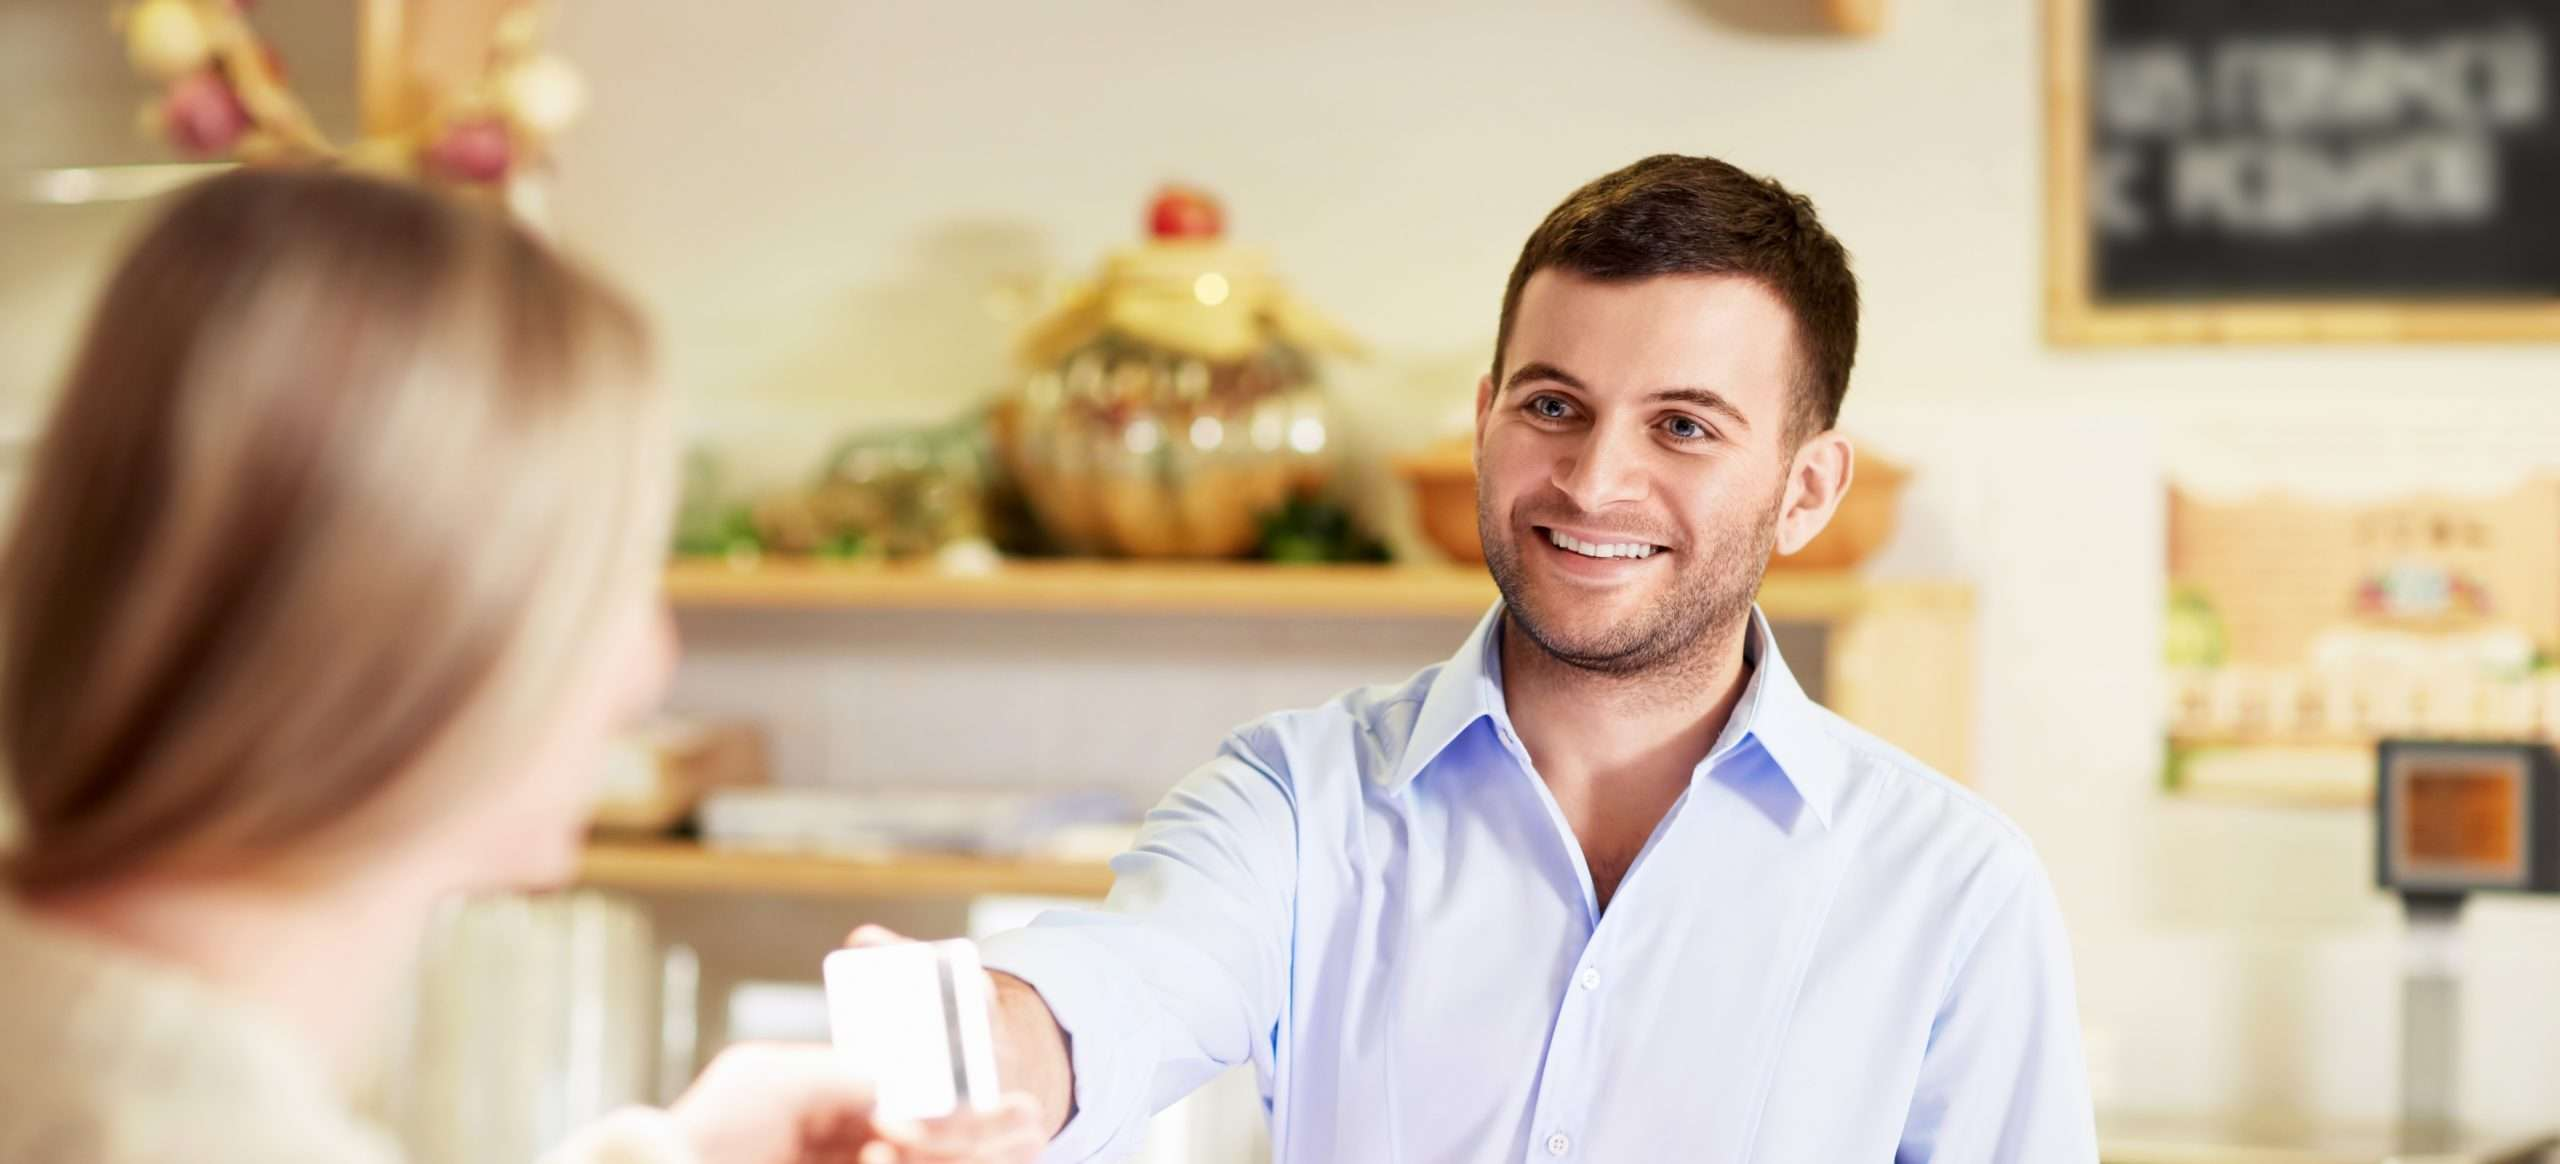 Two people exchange a credit card while using point-of-sale systems